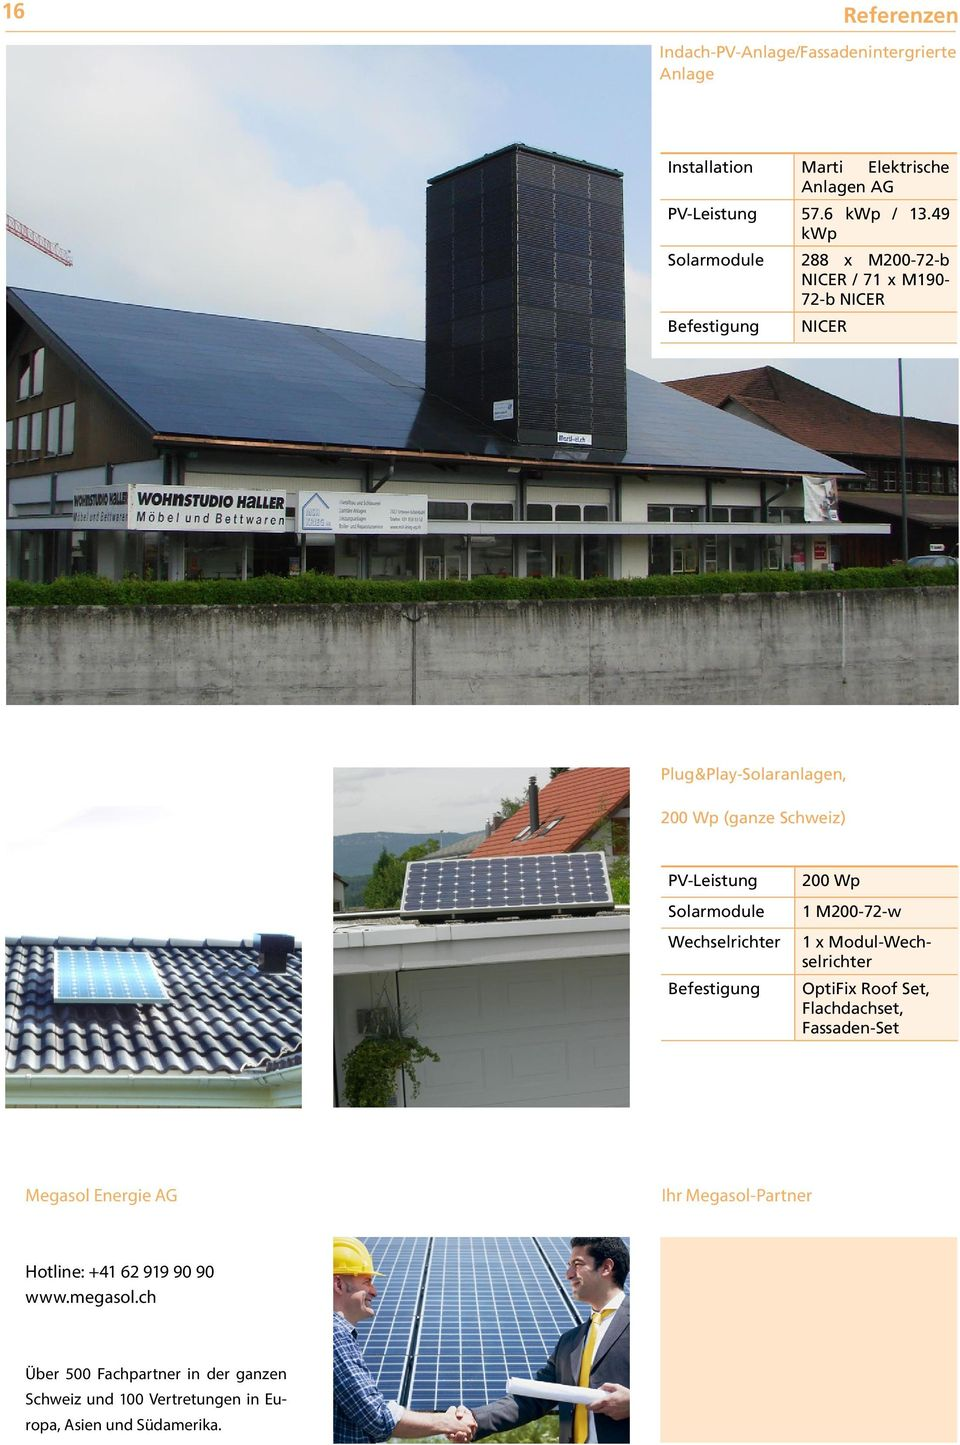 Modul- OptiFix Roof Set, Flachdachset, Fassaden-Set Megasol Energie AG Ihr Megasol-Partner Hotline: +41 62